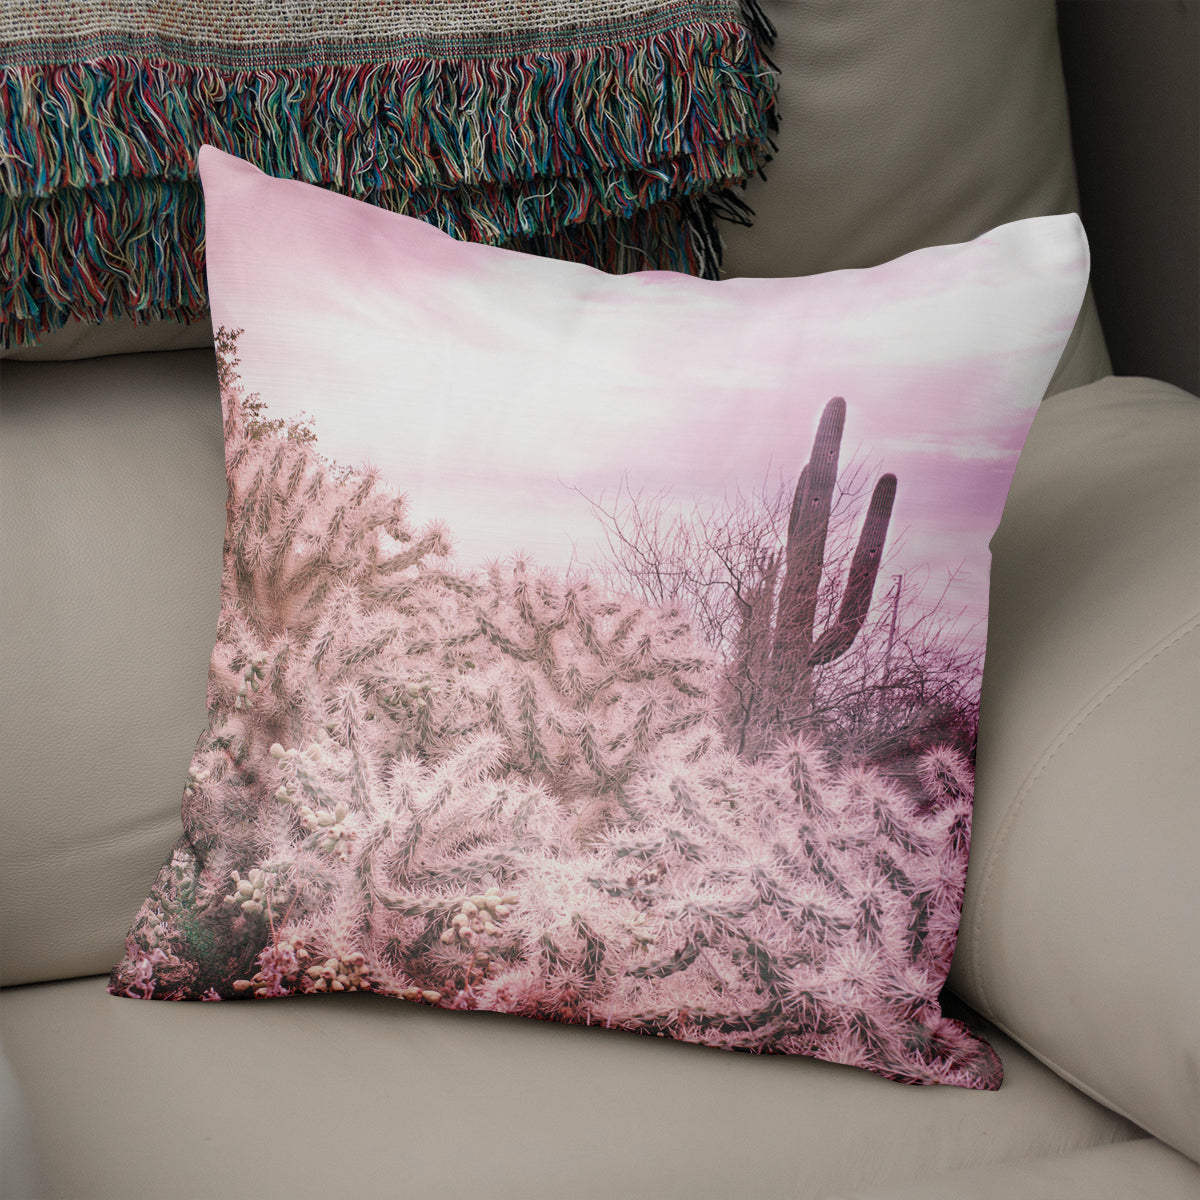 Dreamy Cholla and Sorrel Cactus Throw Pillow - 5 Sizes